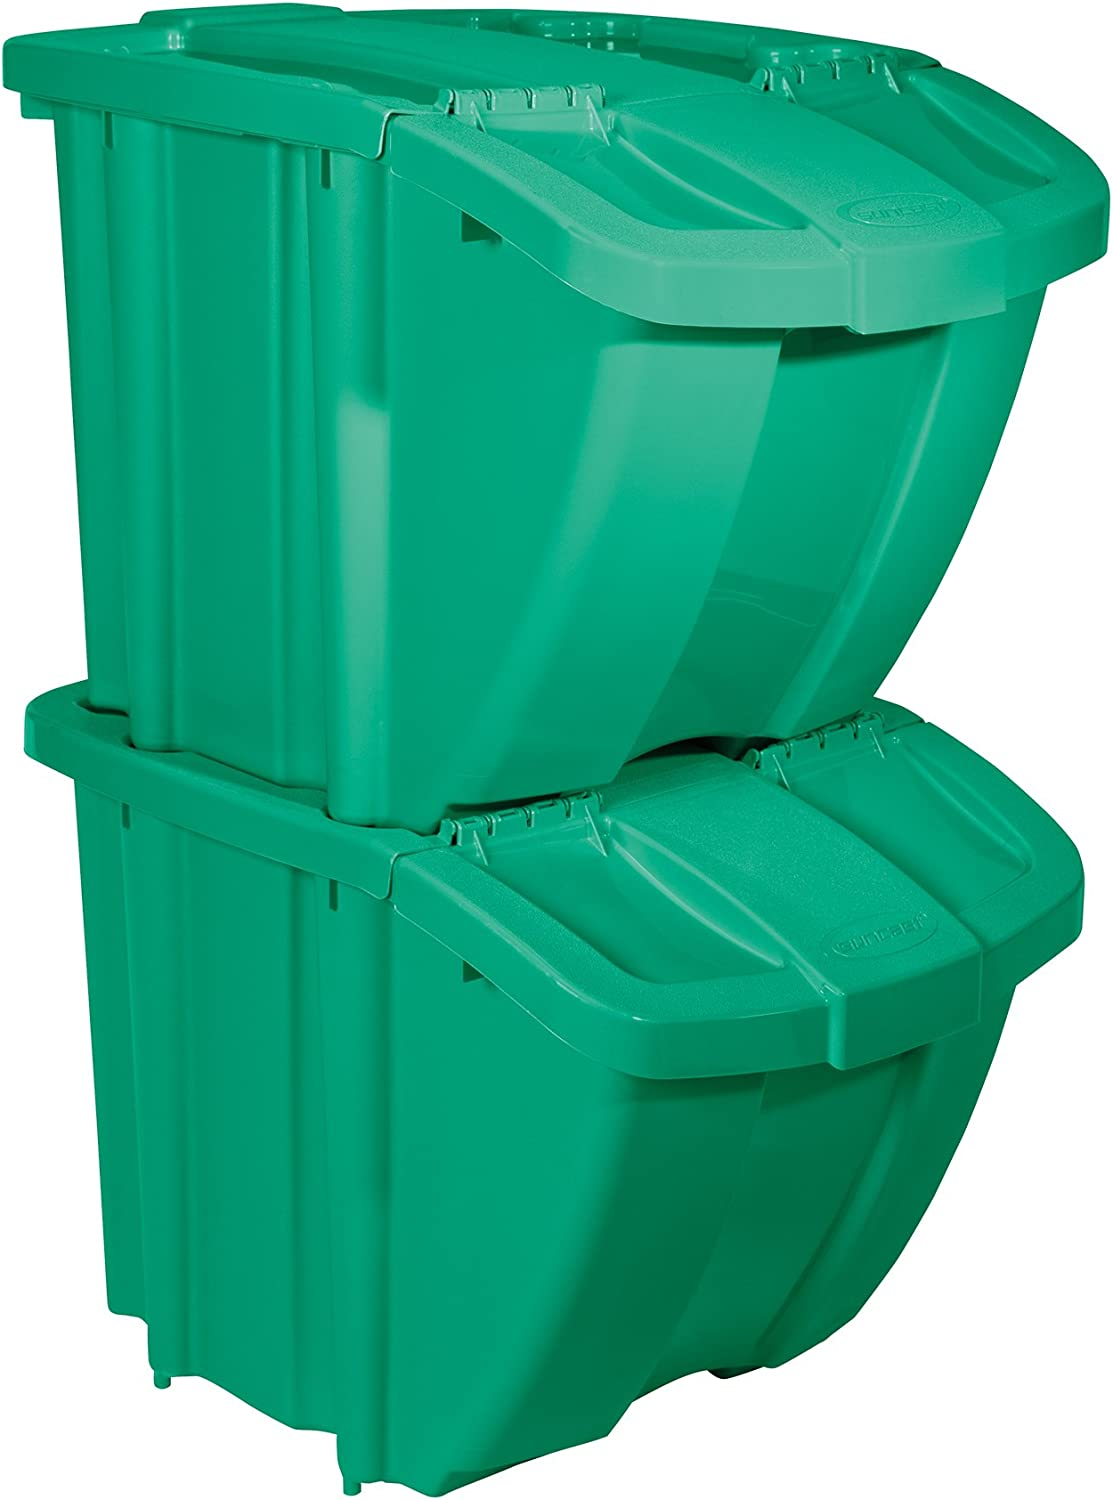 Suncast 18 Gallon Recycle Bin Green Organizer Stackable Super sale period limited Kit specialty shop